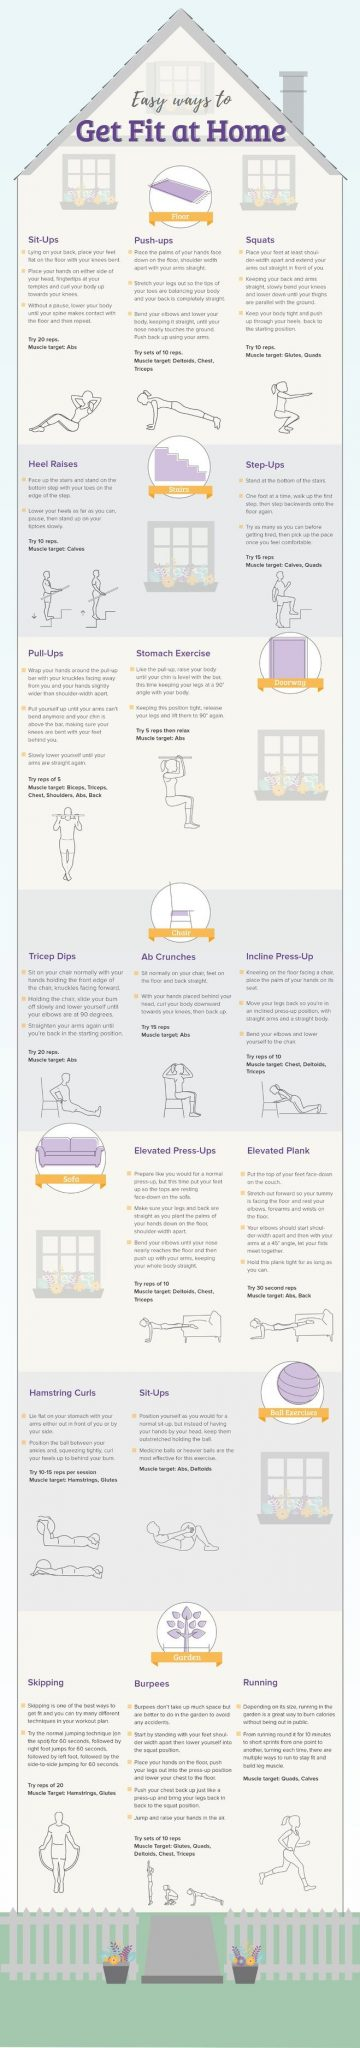 easy ways to get fit at home infographic